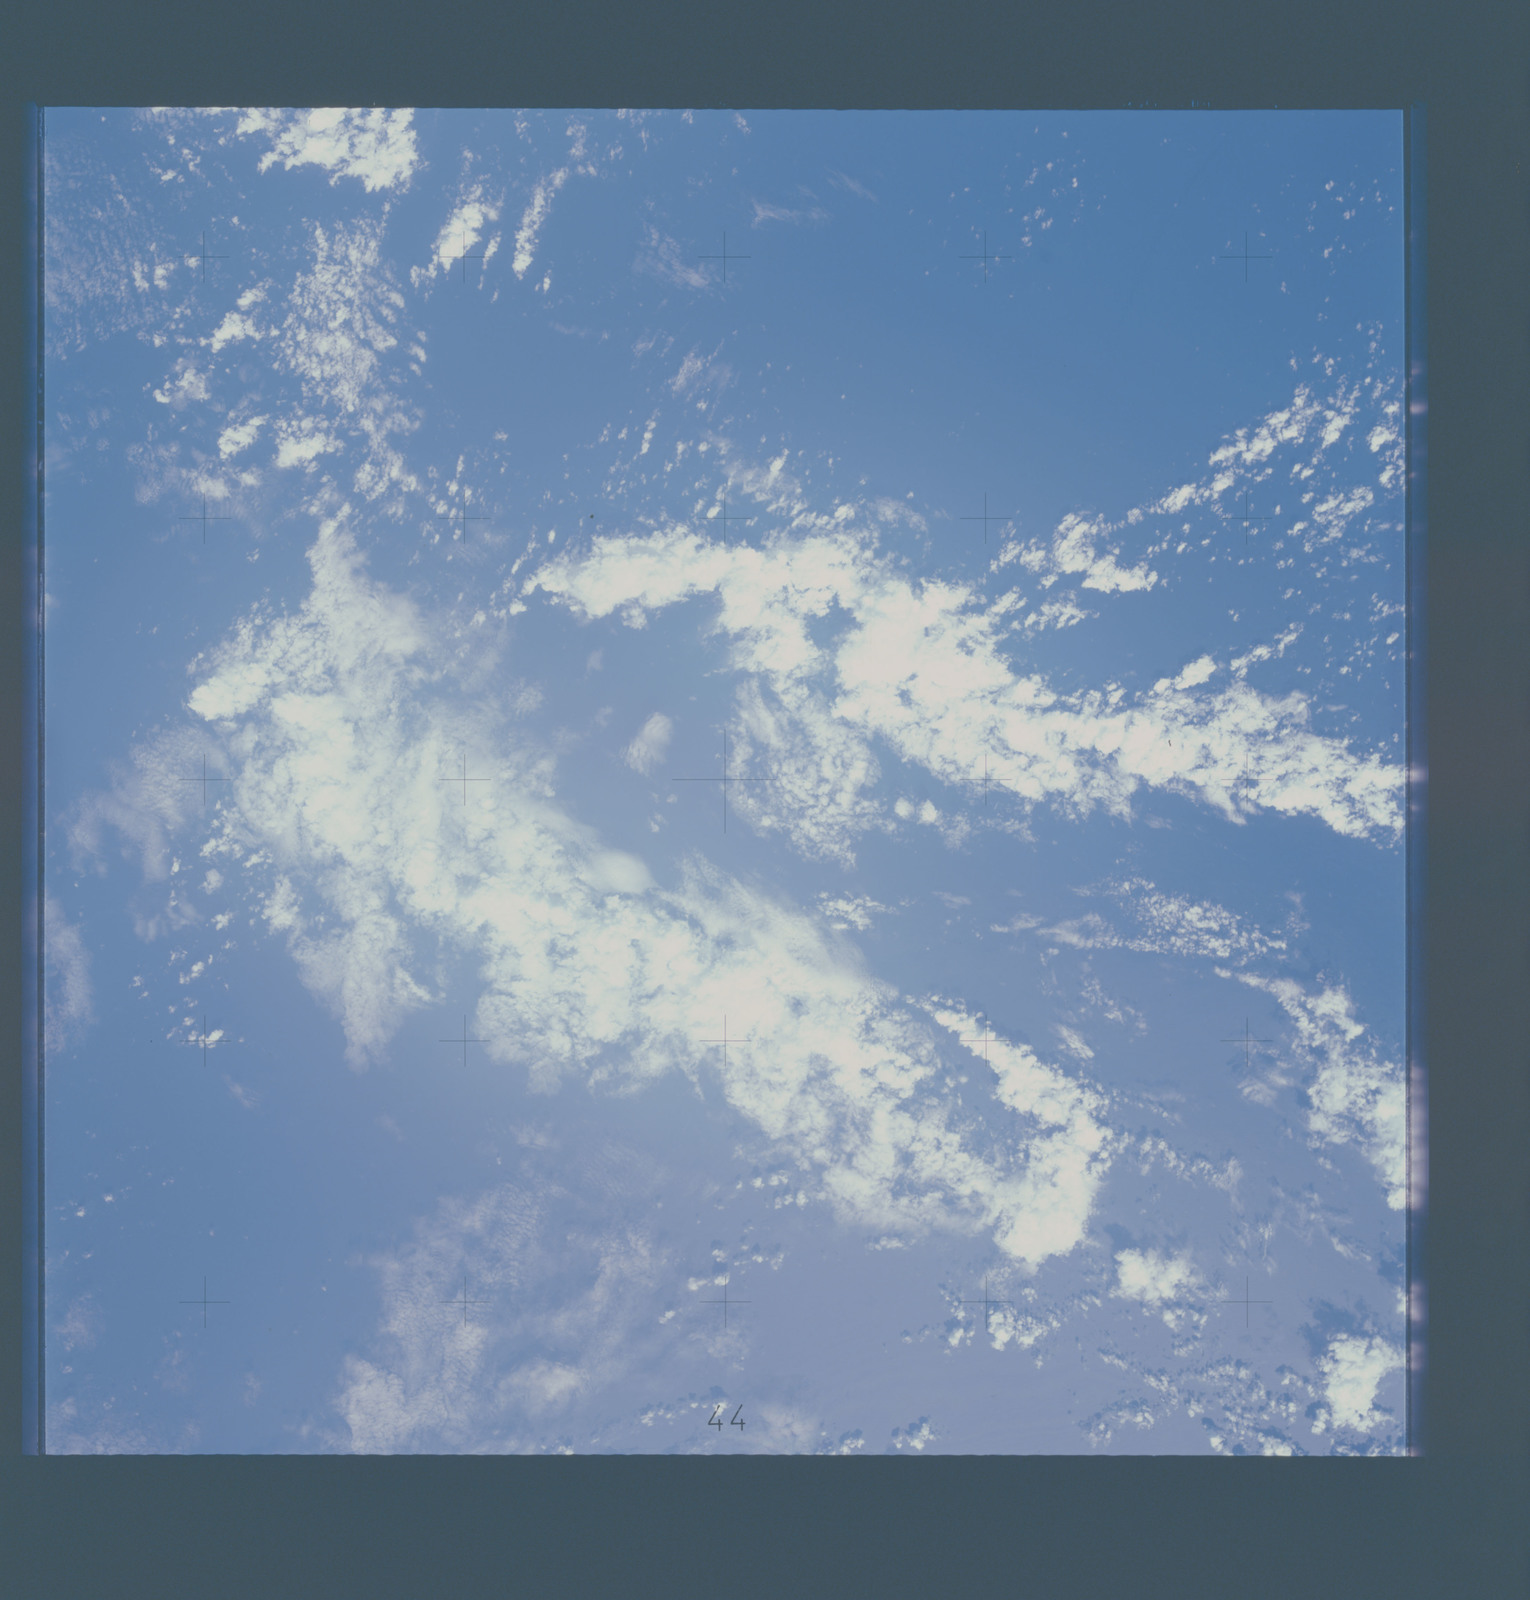 AST-15-1022 - Apollo Soyuz Test Project - Apollo Soyuz Test Project, Clouds over Indian Ocean